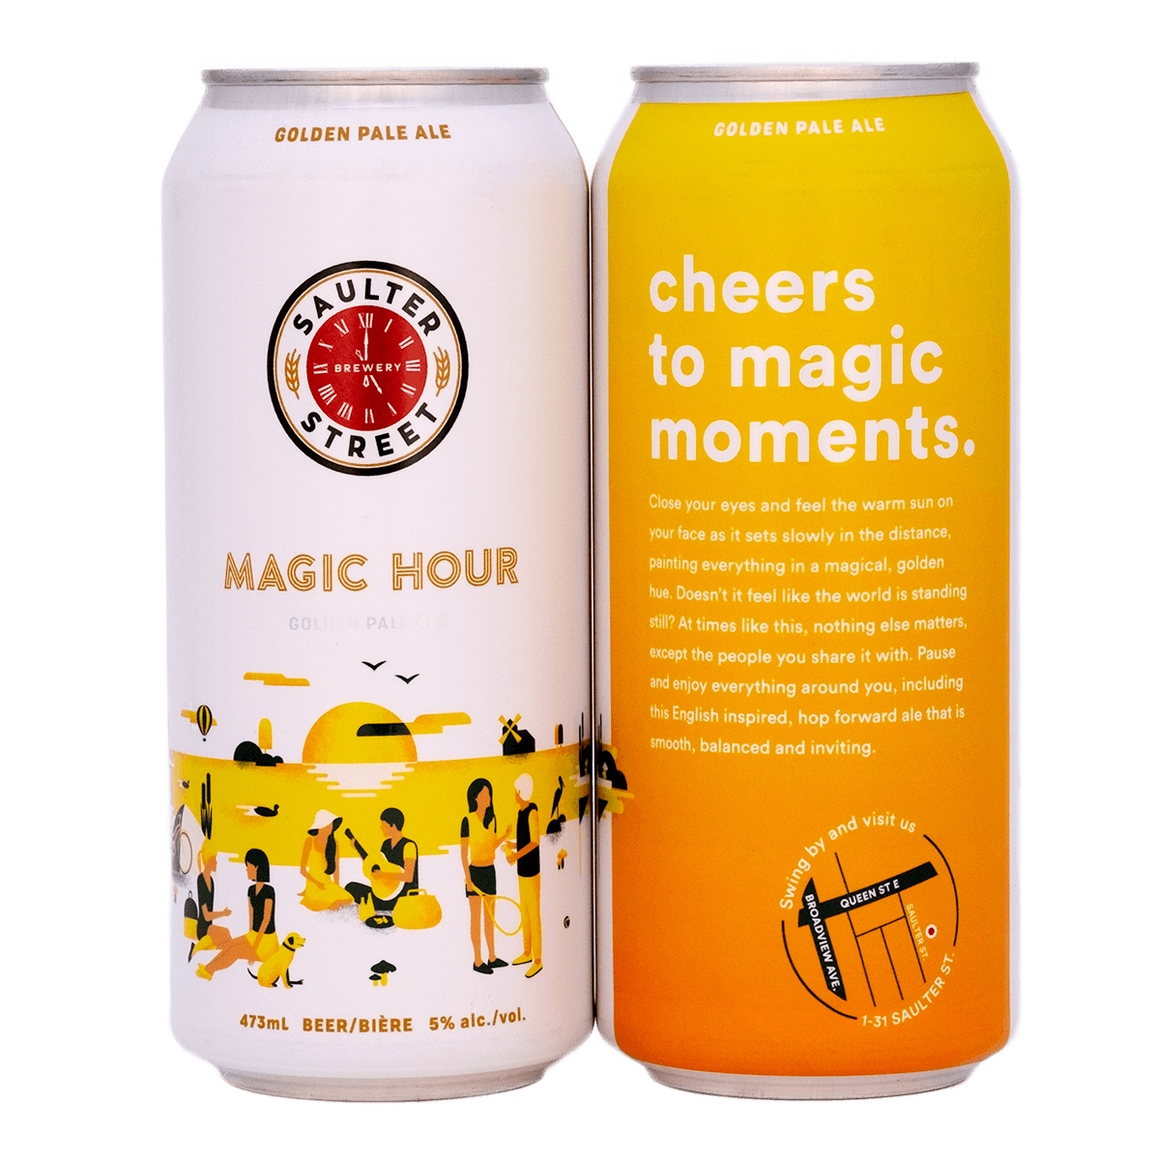 Magic Hour - Golden Pale Ale